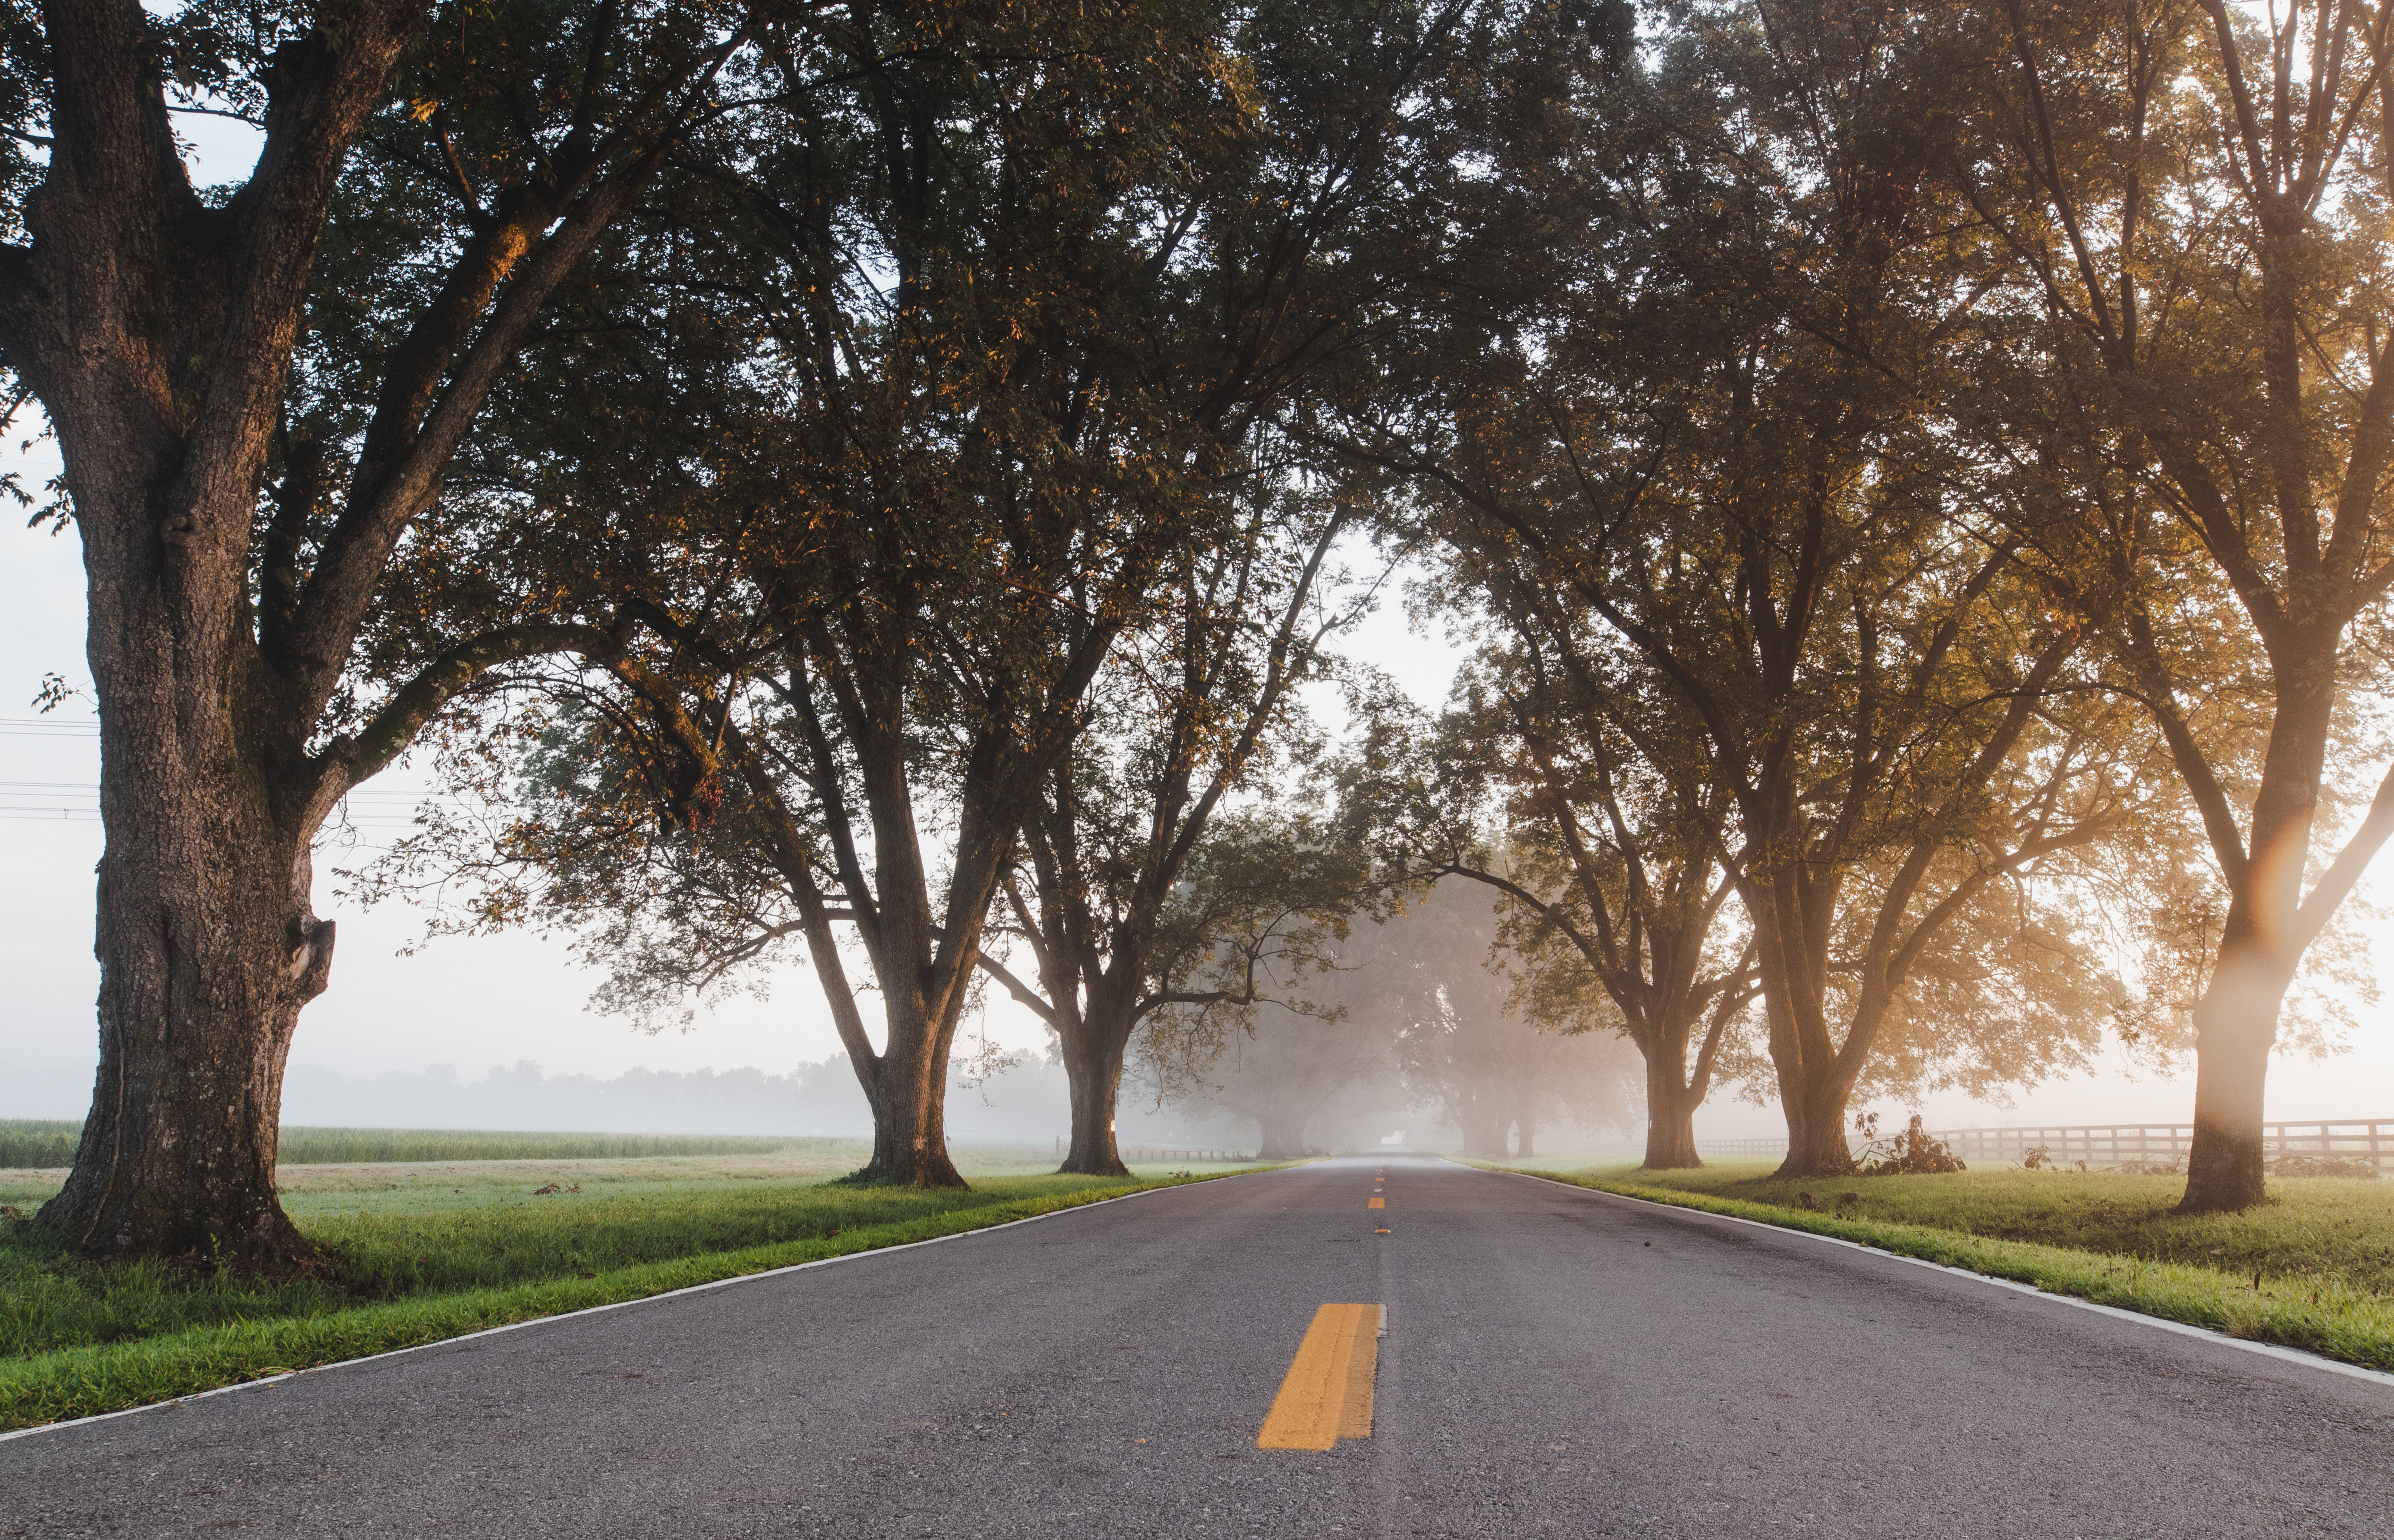 Road lined with pecan trees on a foggy morning